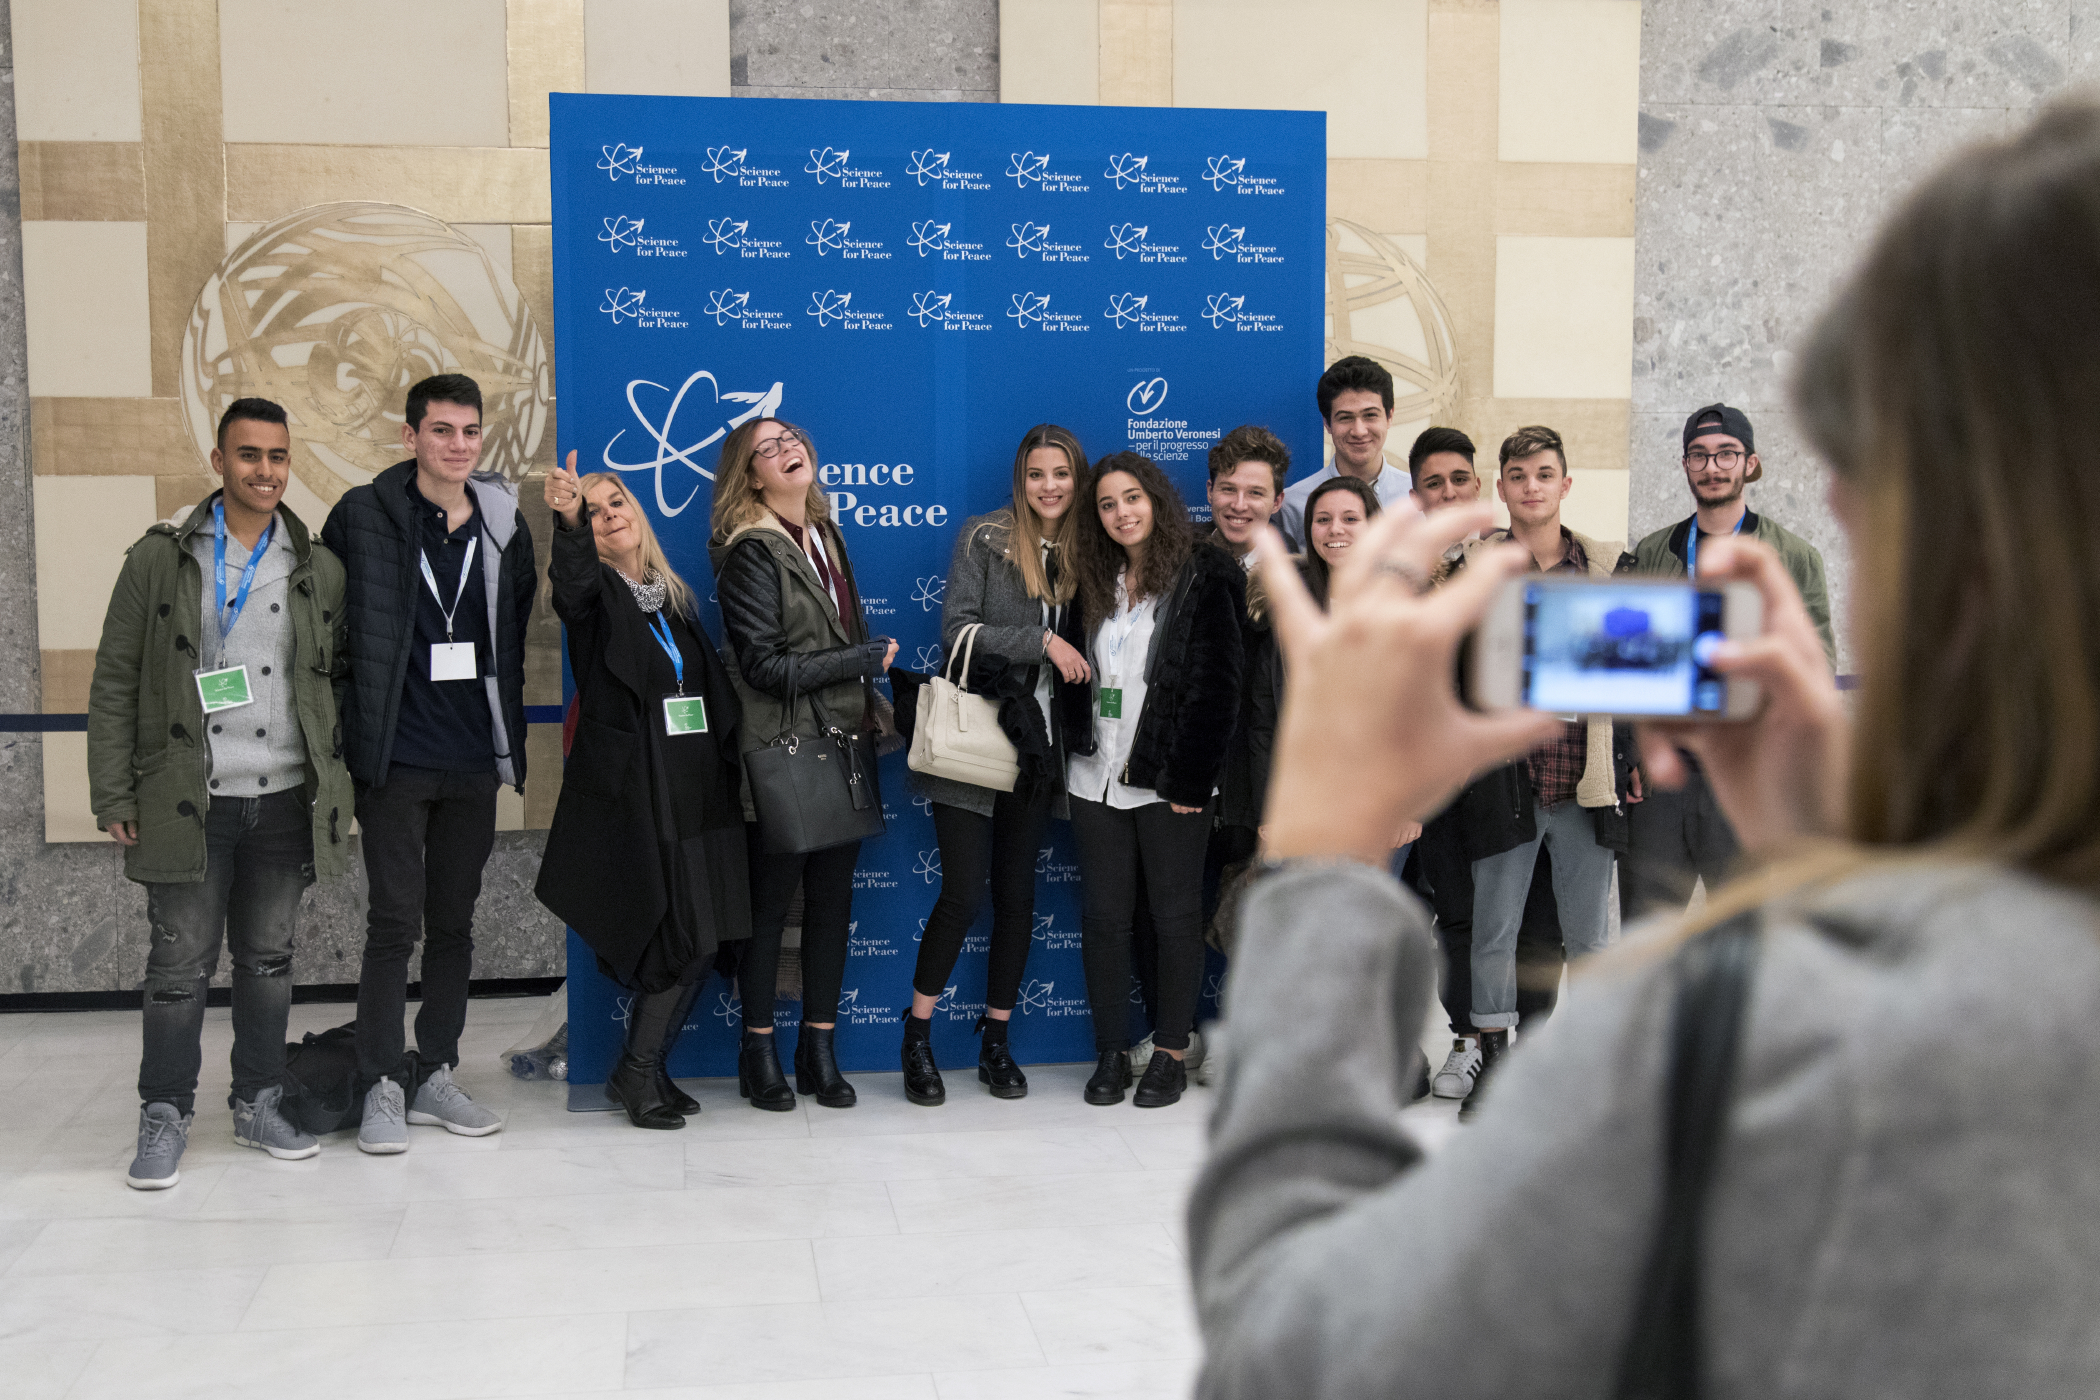 Nona conferenza Science for Peace - Le Scuole